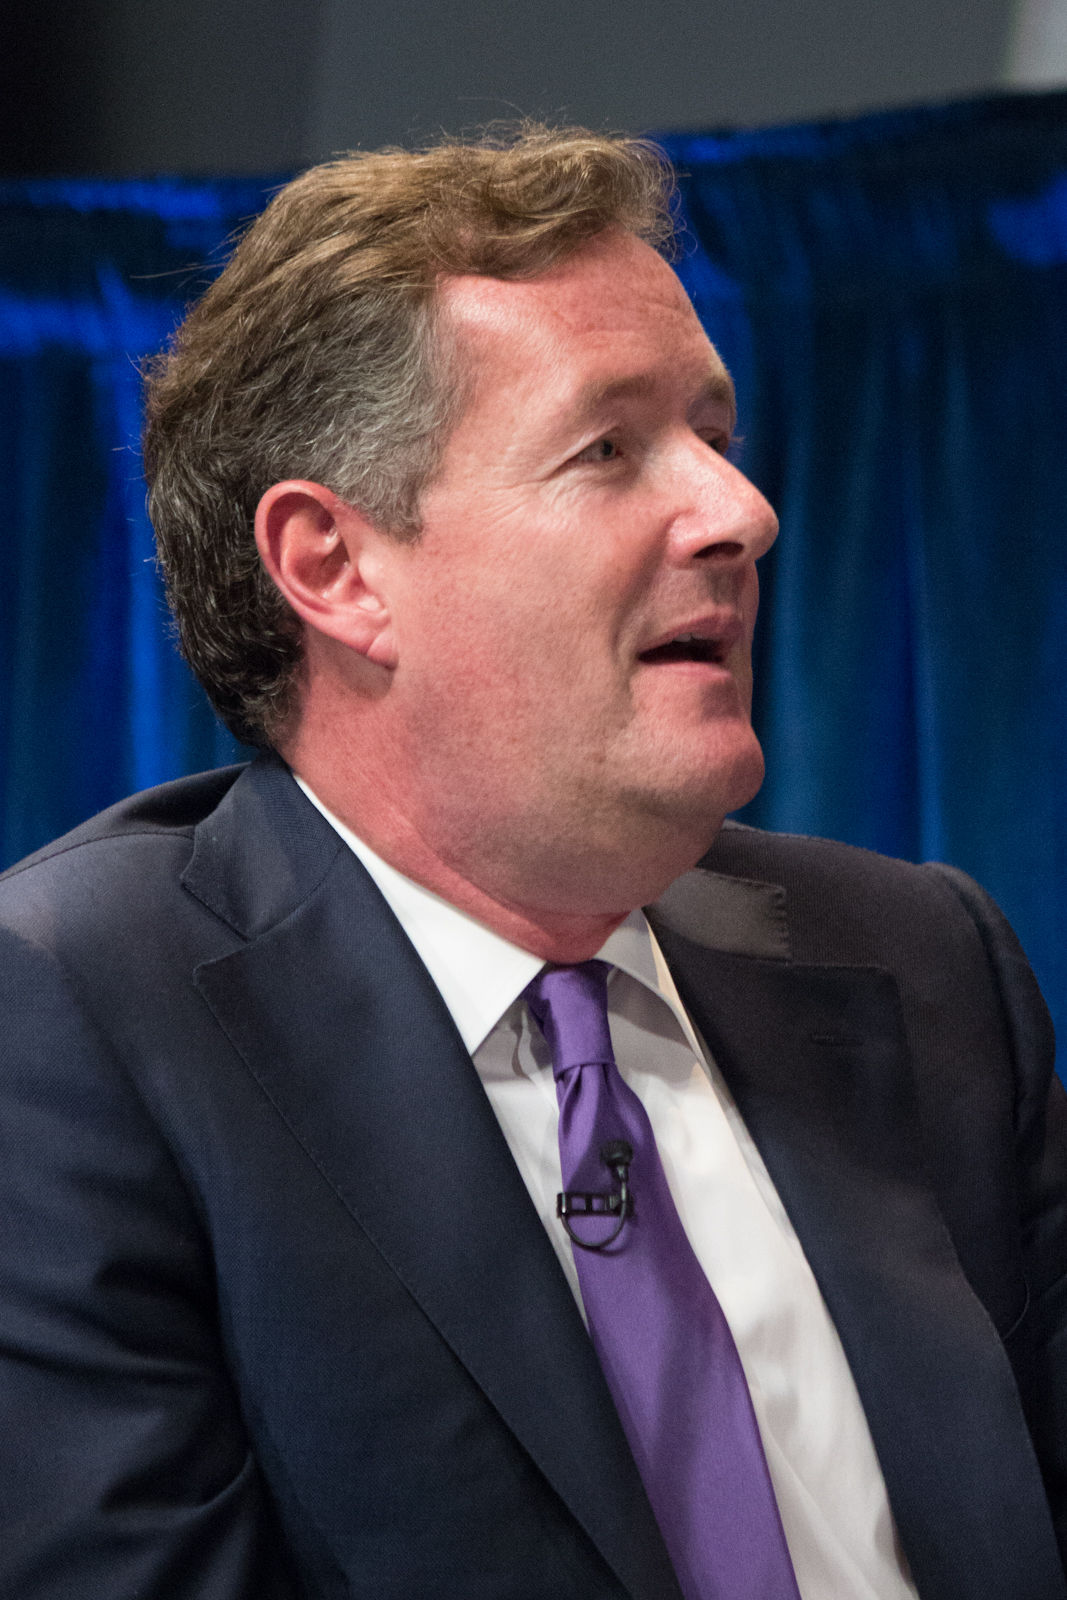 Photo of Piers Morgan: Journalist and television host from England